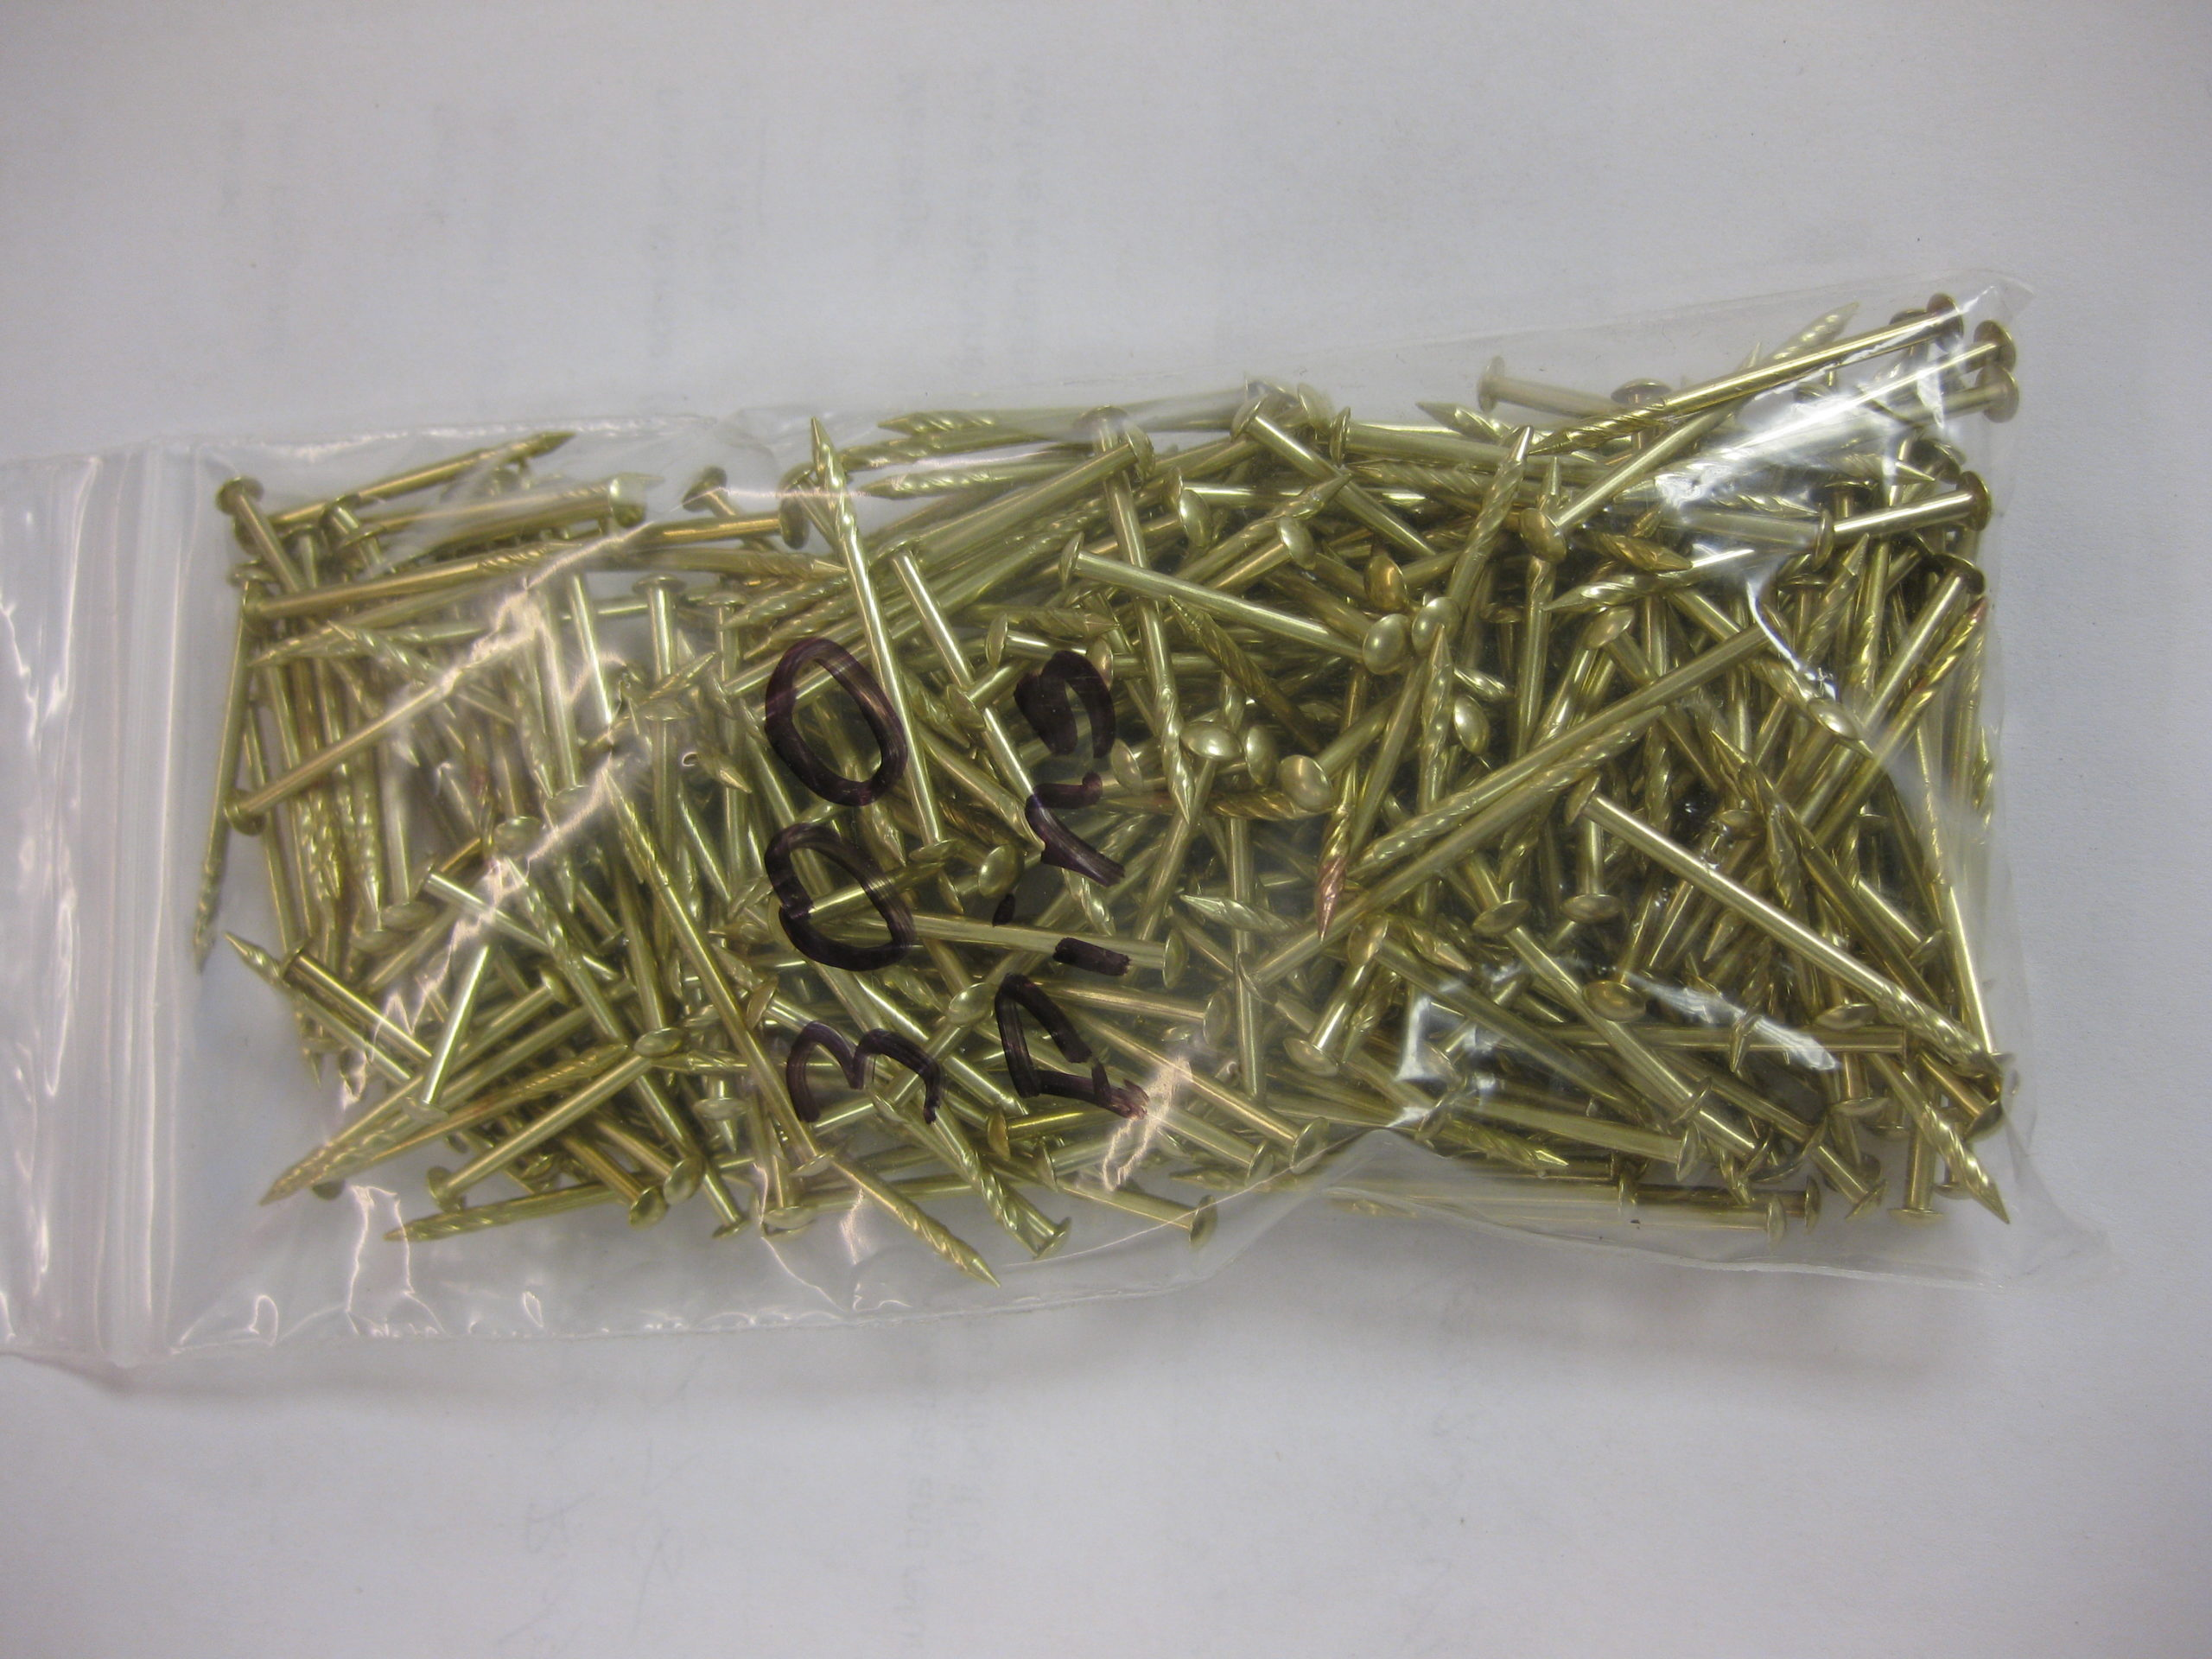 300 Used Playfield Pins- Polished